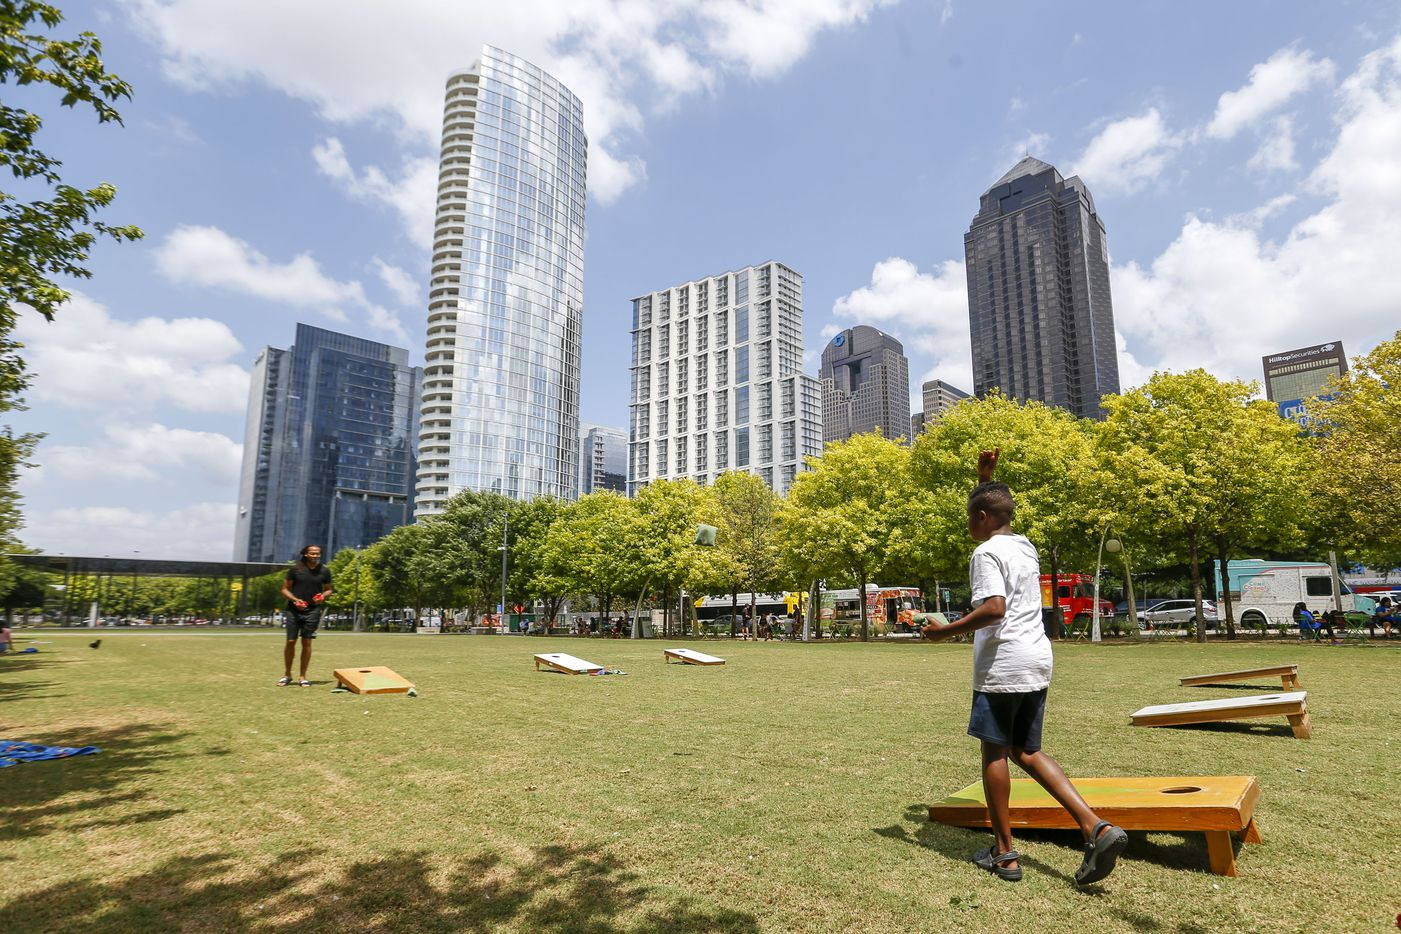 Darnell Hugee of Mesquite (left) plays cornhole with his nephew Josiah Parchman at Klyde Warren Park on Wednesday, June 23, 2021, in Dallas.